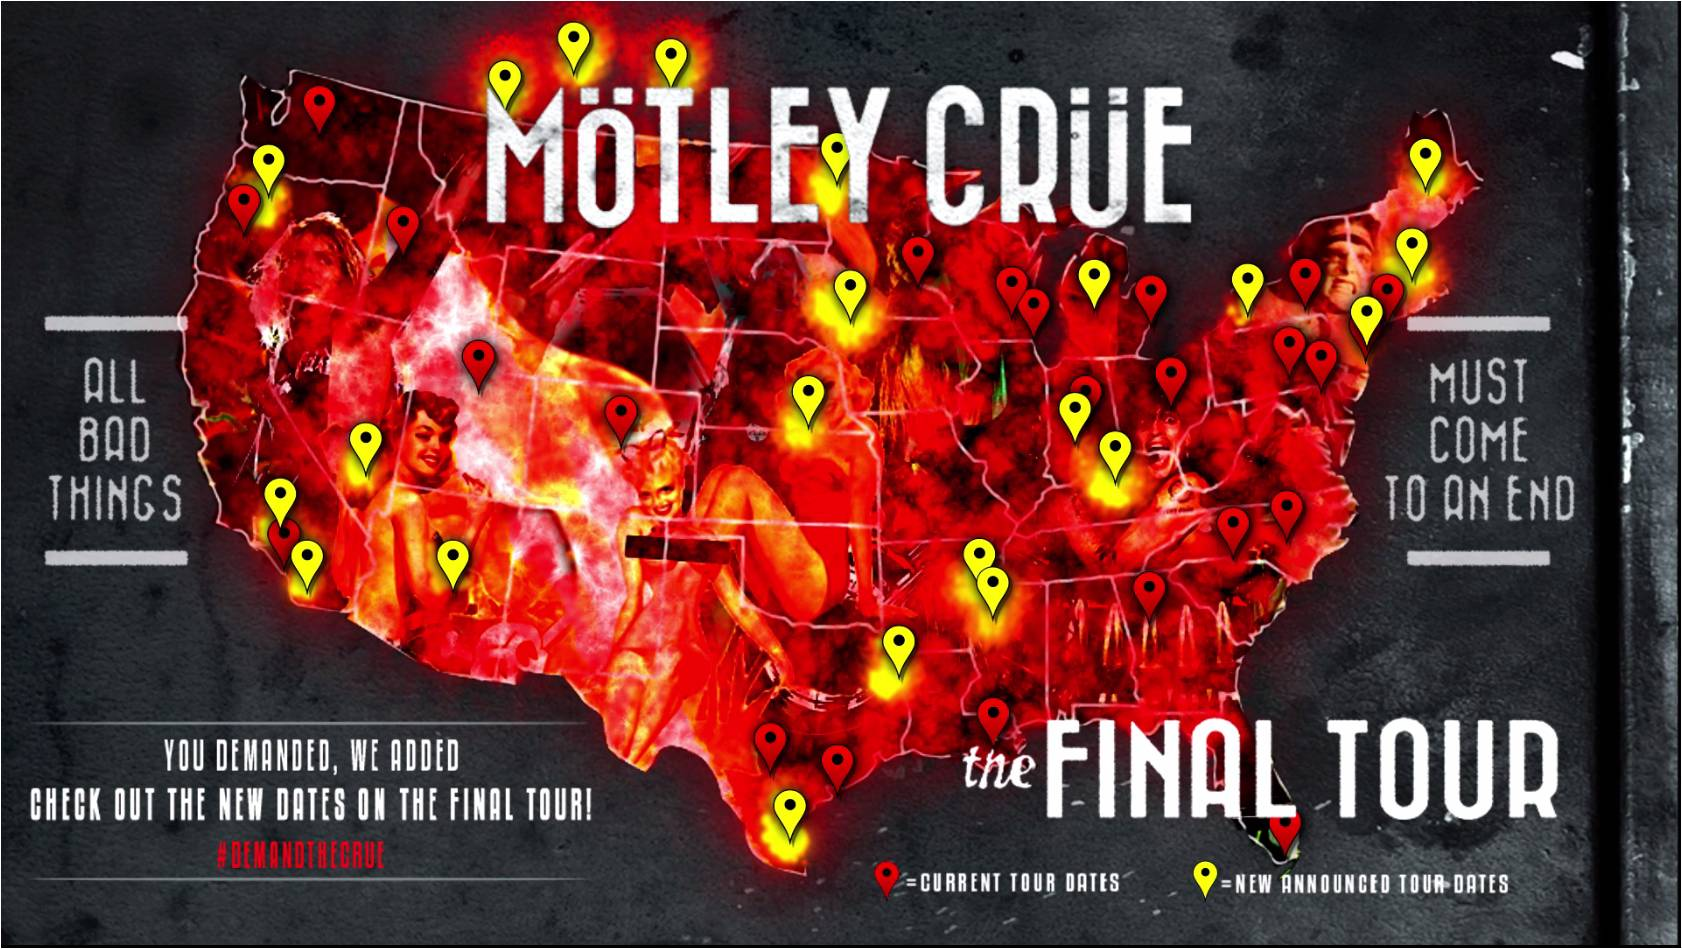 Last Additional North American Dates Of Final Tour Revealed Due To Overwhelming Fan Demand Mötley Crüe